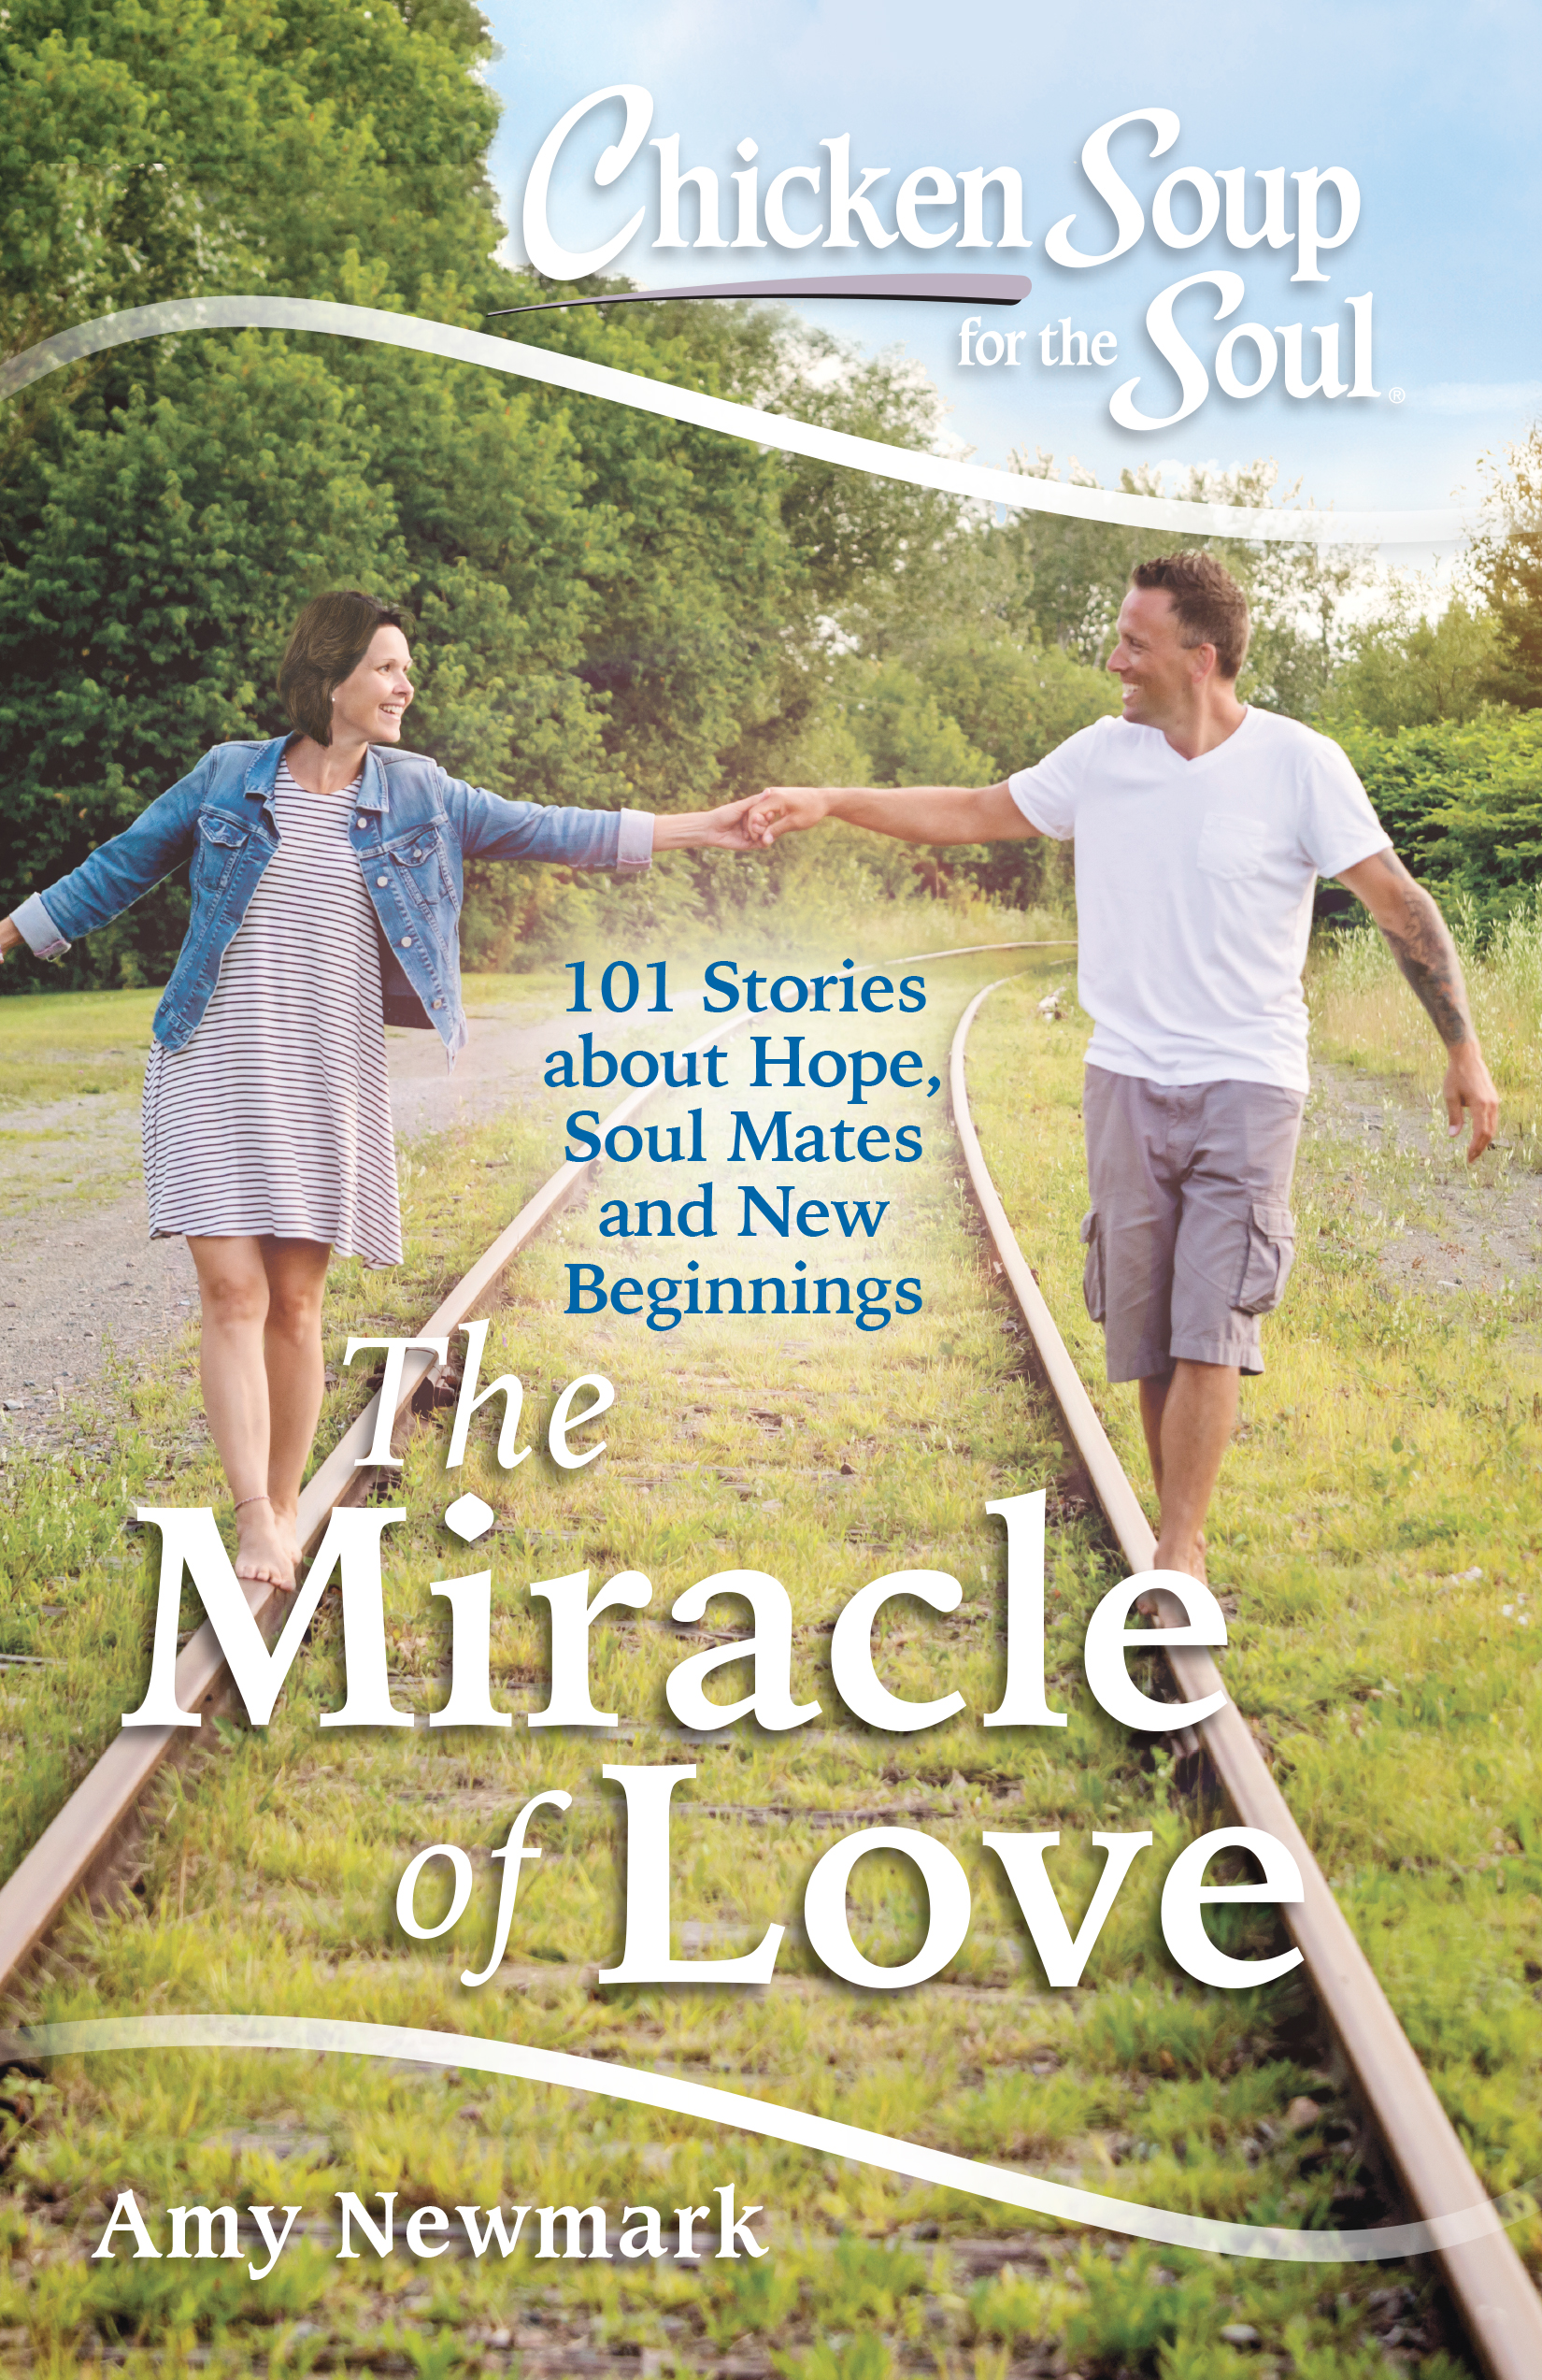 Chicken Soup cover The Miracle of Love